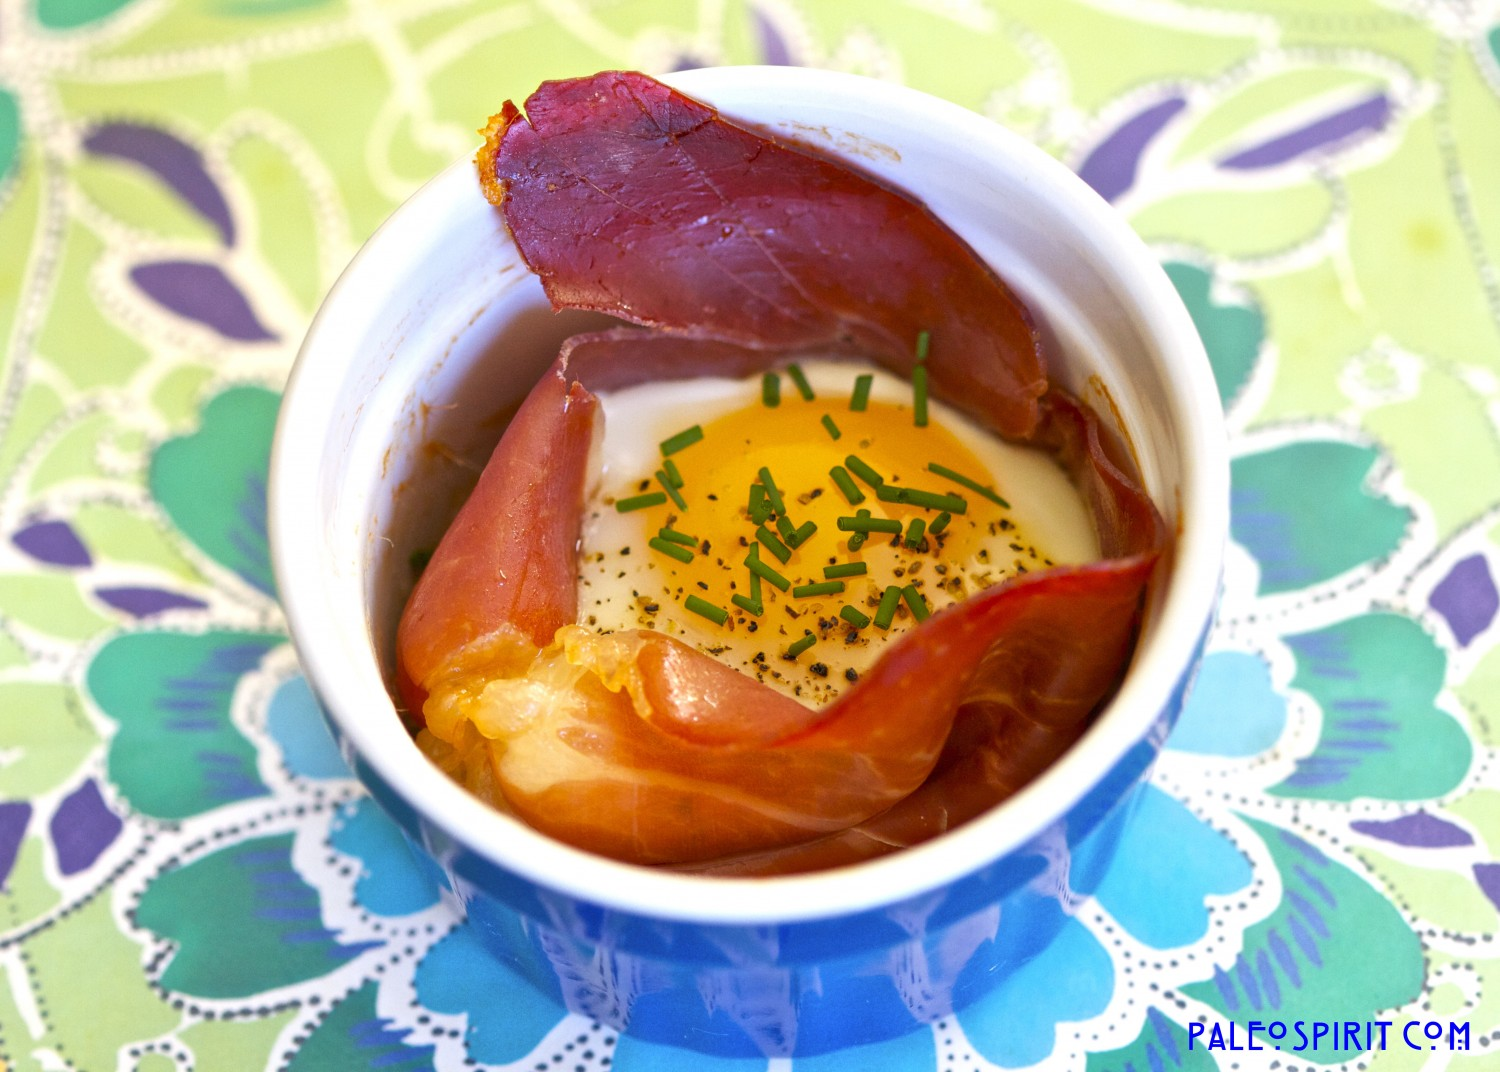 Baked Eggs in Prosciutto Cups